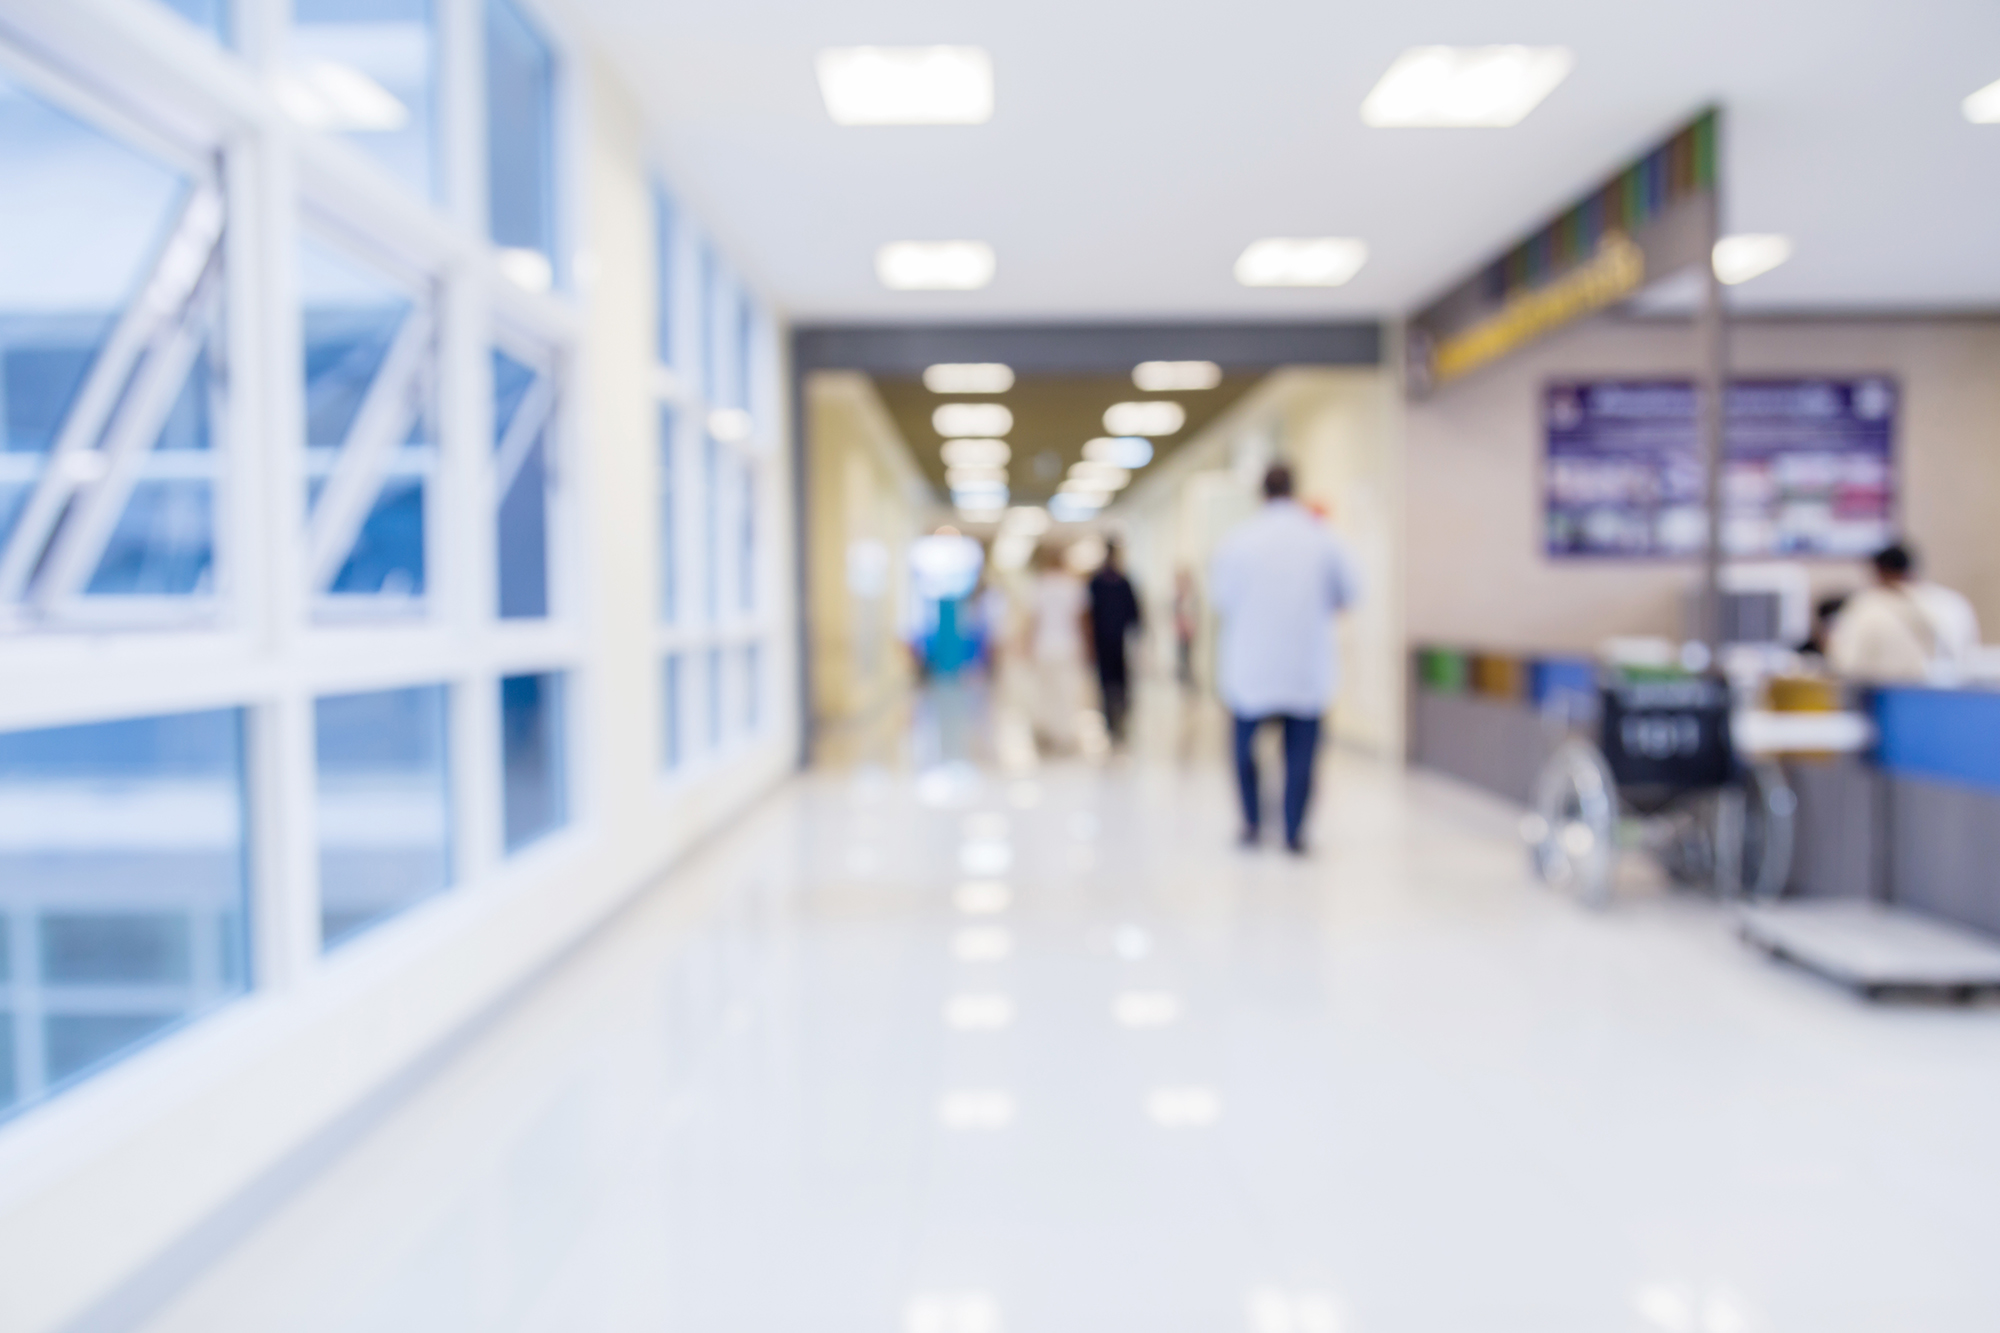 A hospital readmission occurs when a patient who has been discharged from a hospital is admitted again within a specific time interval.